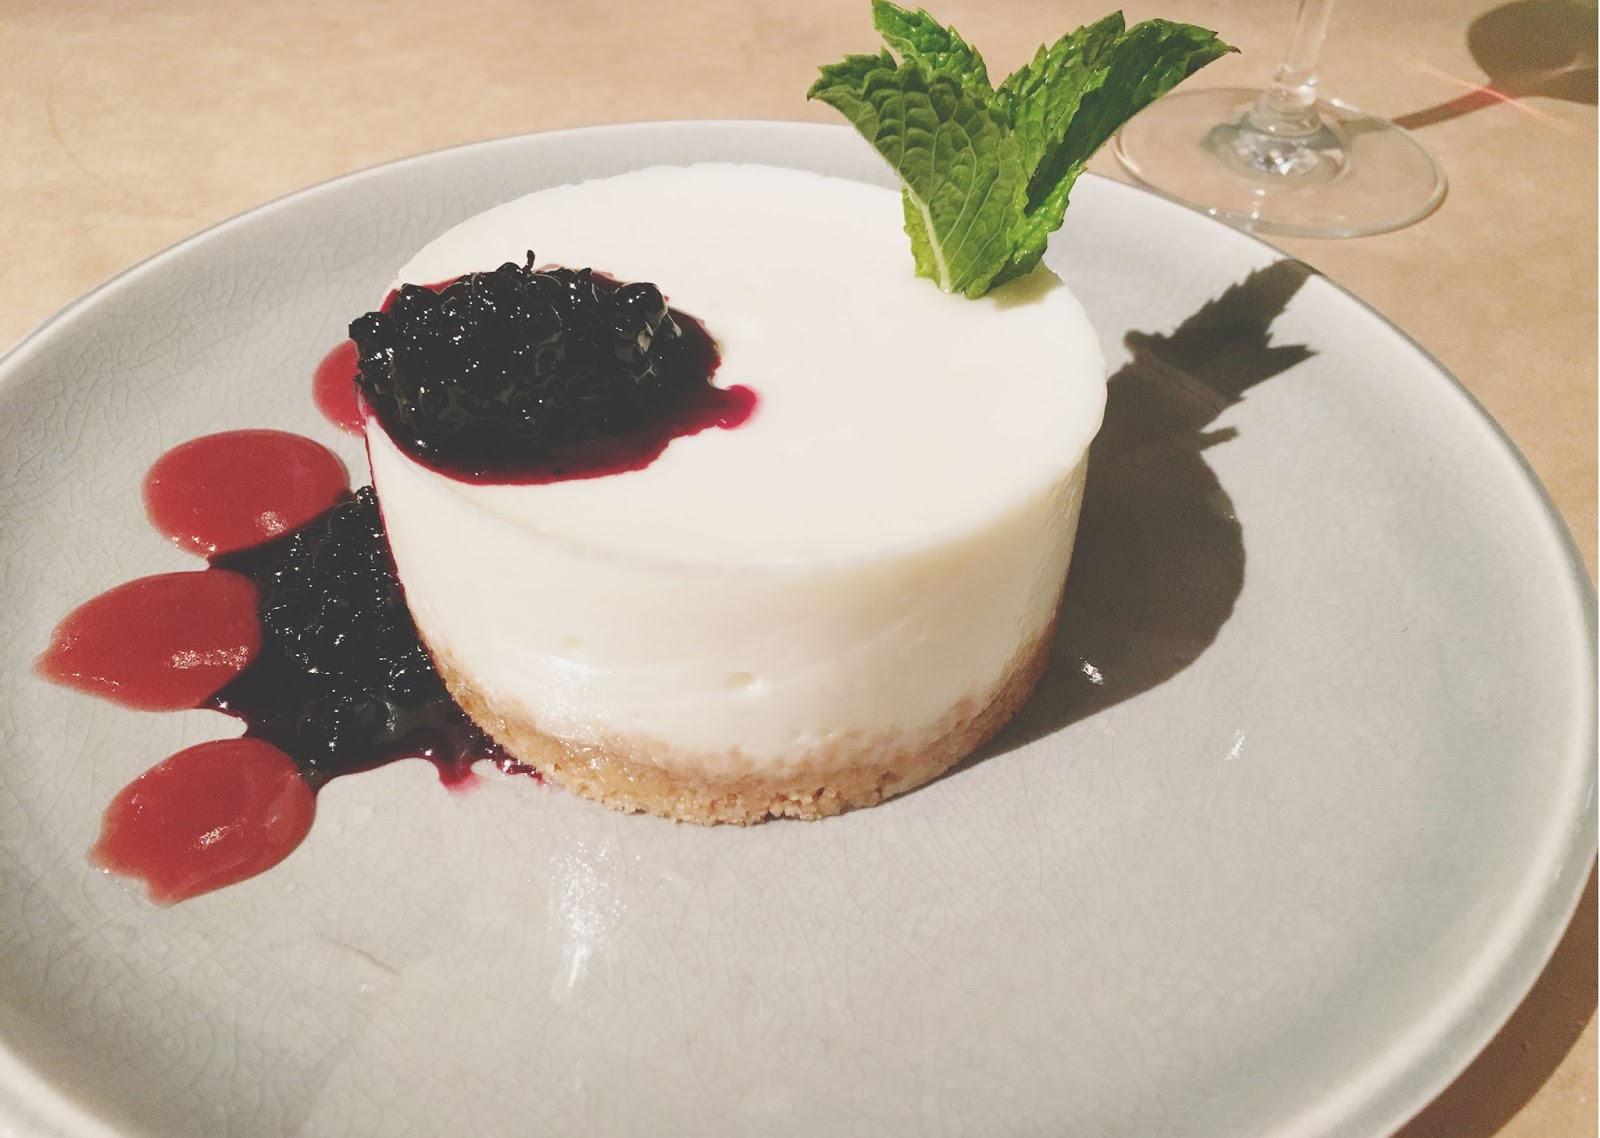 cheesecake at Celadon - a restaurant in Napa, California